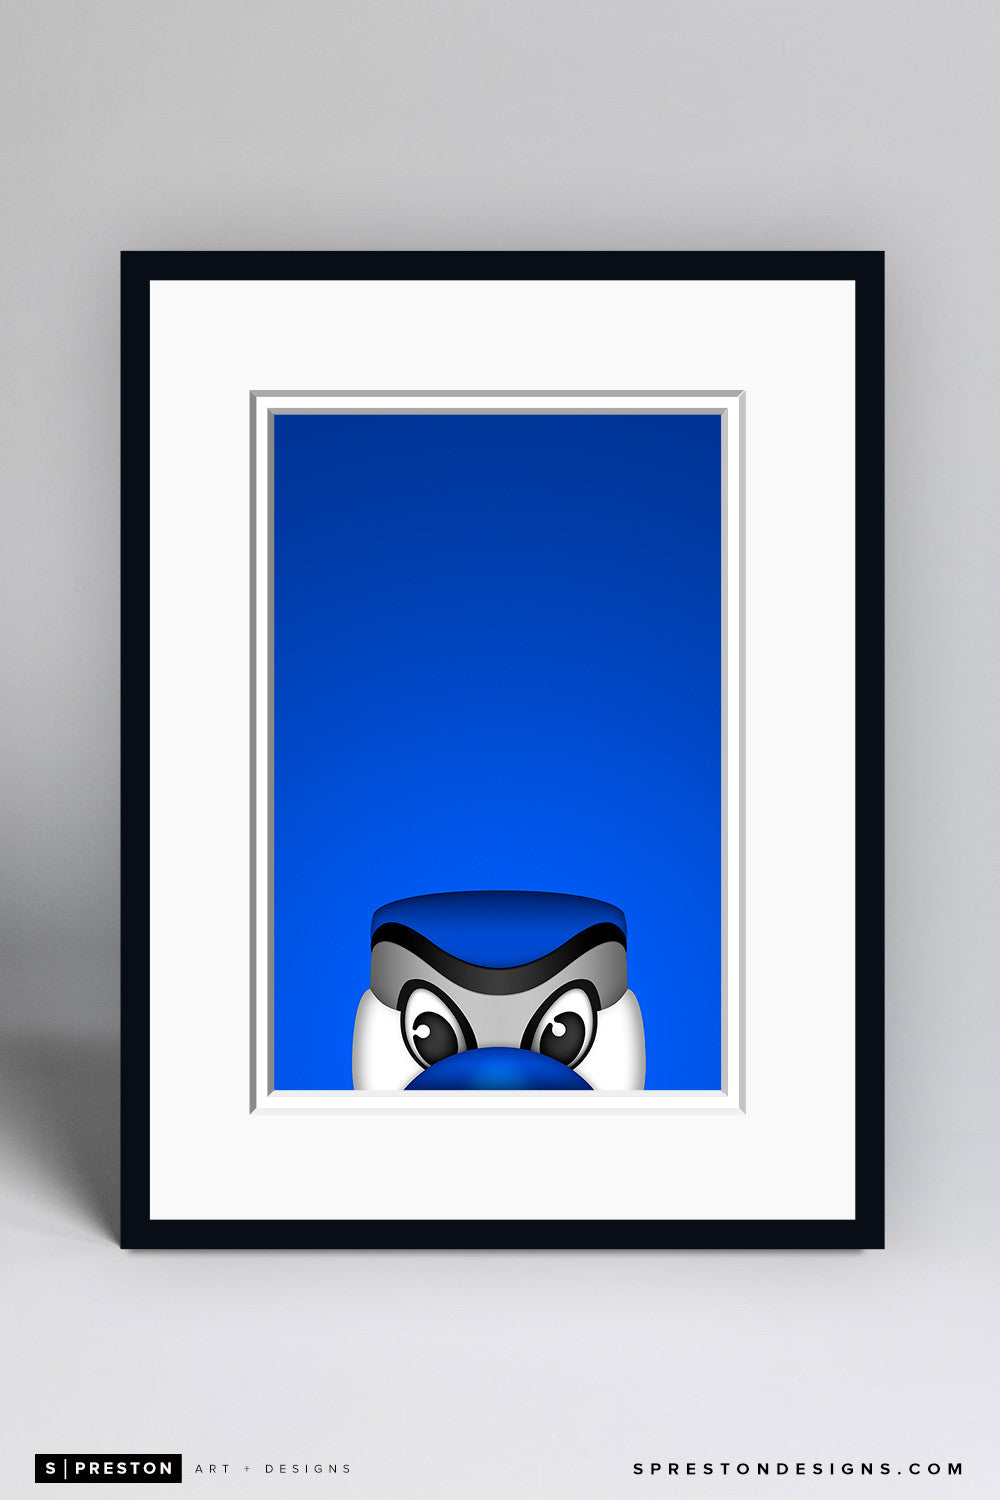 Minimalist Ace - Toronto Blue Jays - S. Preston